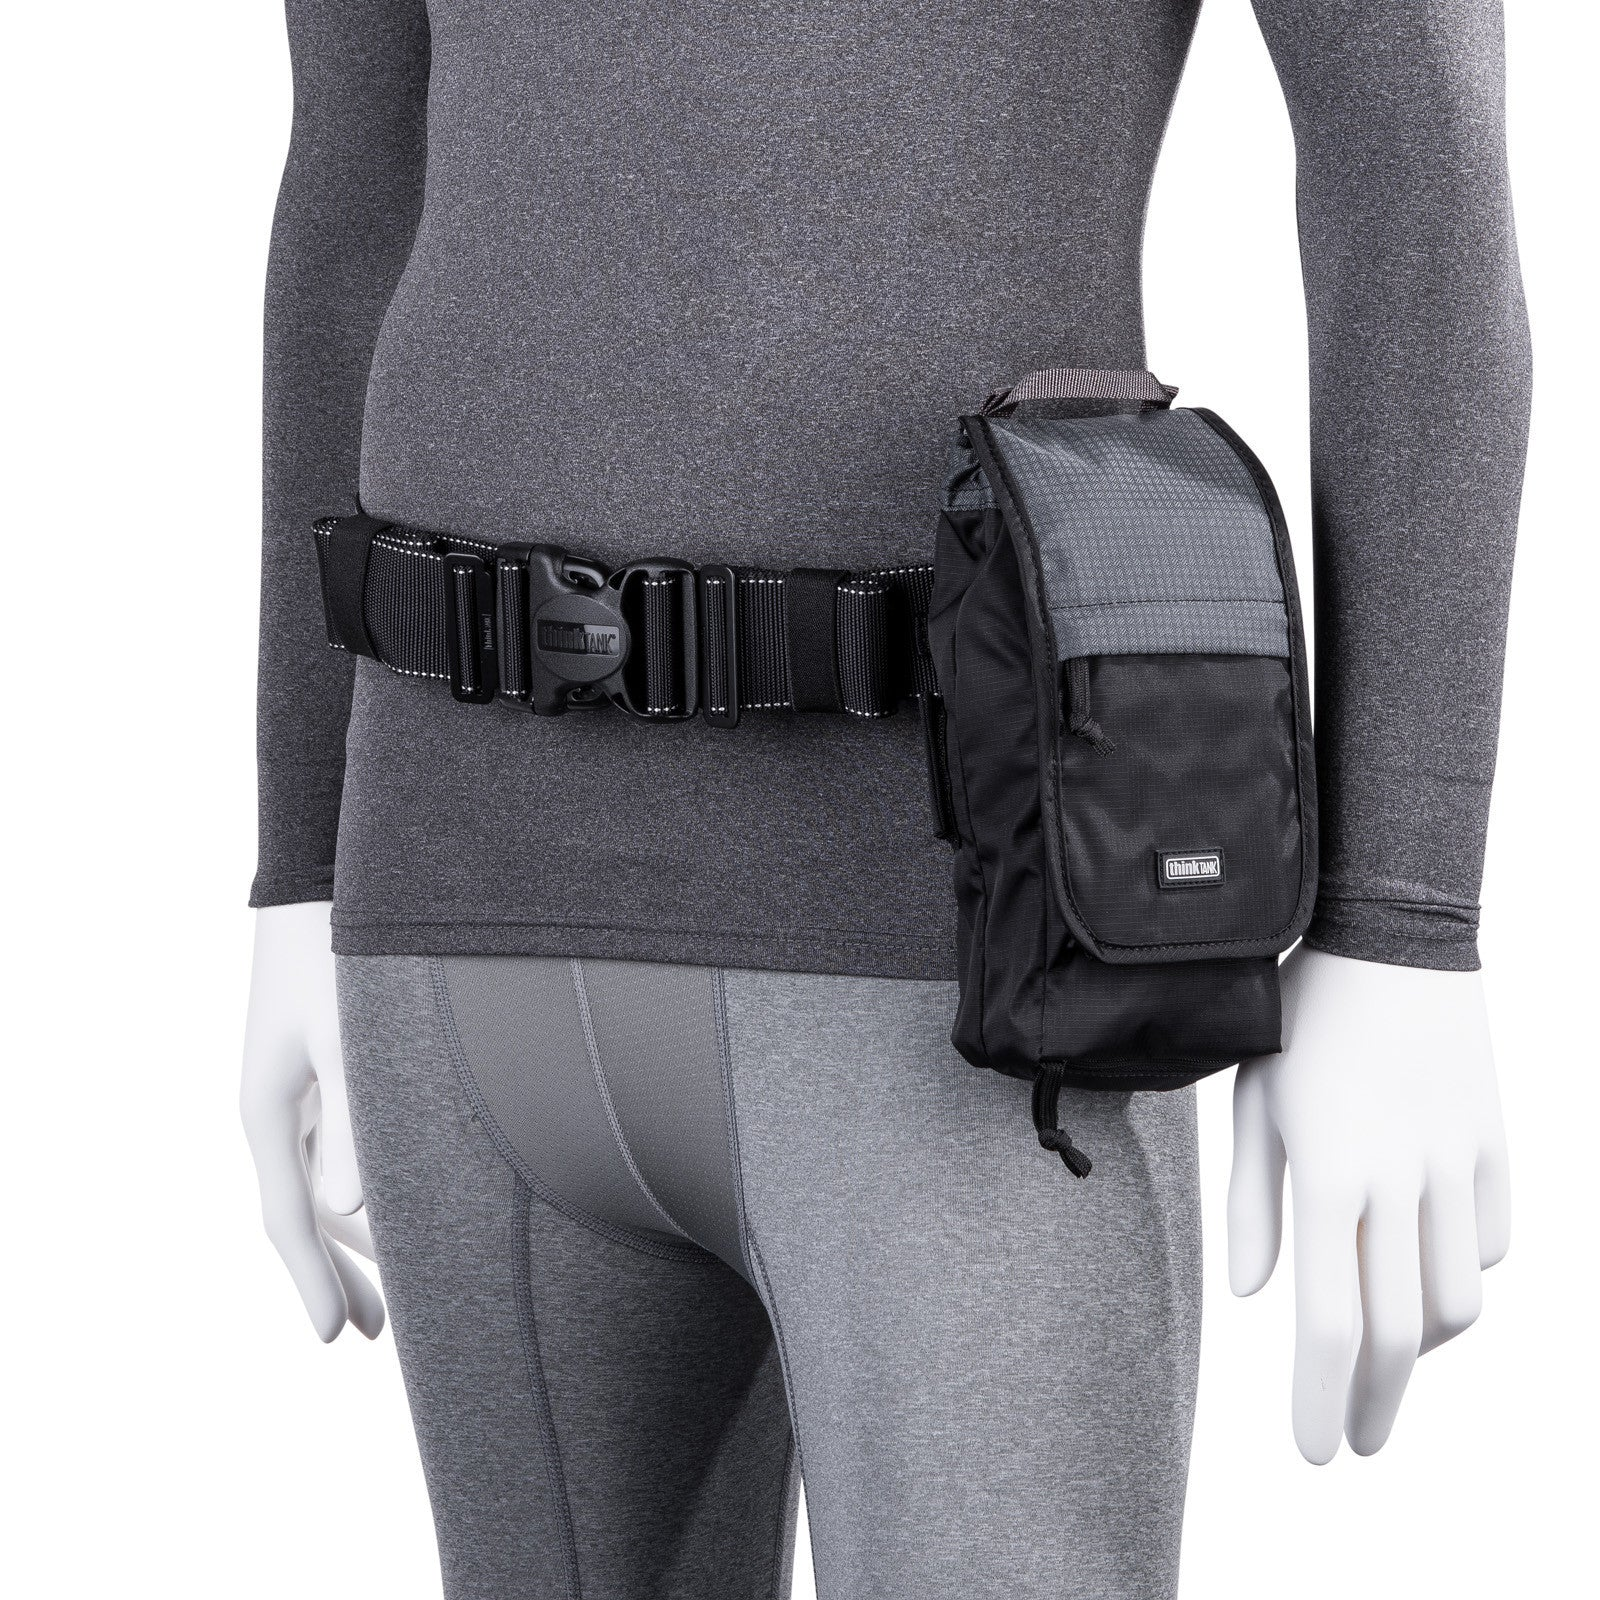 Think Tank Thin Skin Belt V2.0 - S-M-L 033